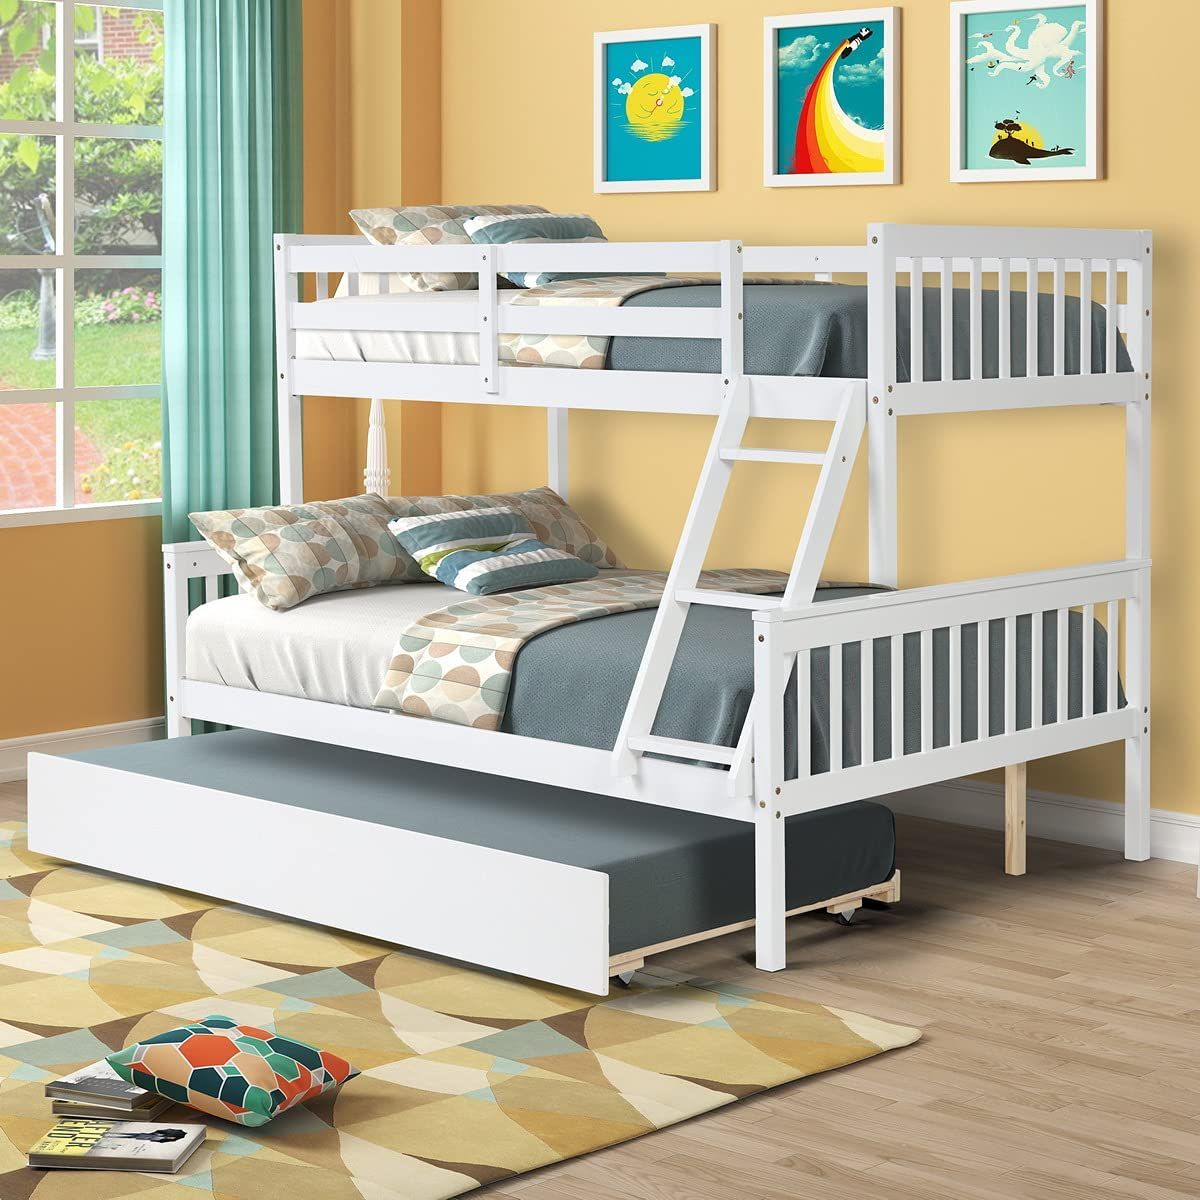 Buy Solid Wood Bunk Beds Twin Over Full Bunk Bed With Trundle Wooden Bed Frame For Kids Teens Adluts Bedroom Furniture Convertible To 2 Platform Bed With Ladder And Guardrails White Online In